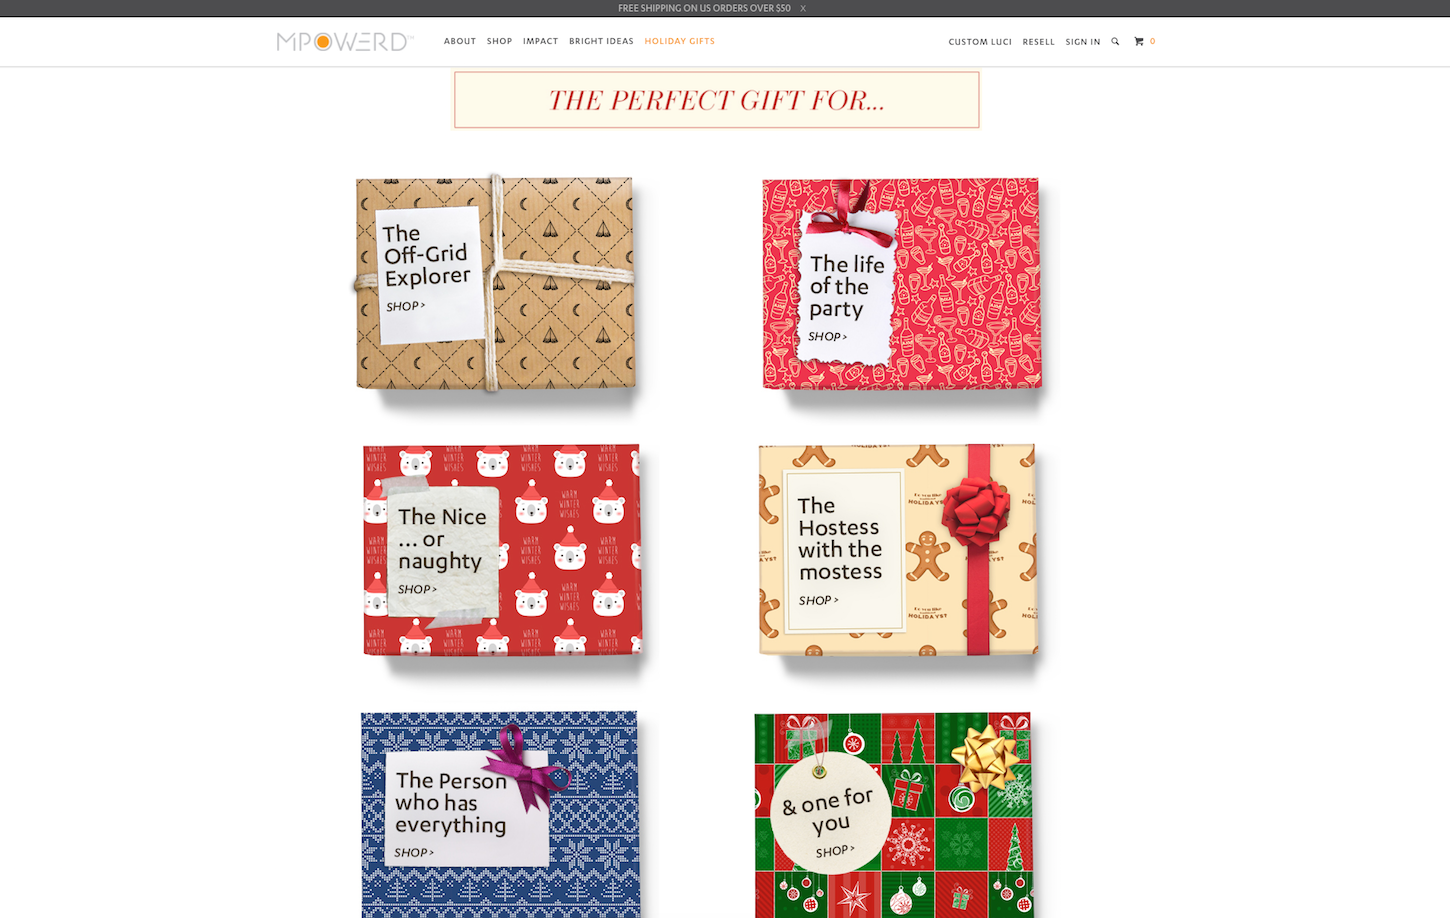 Christmas-themed ecommerce website: MPowered by Genome